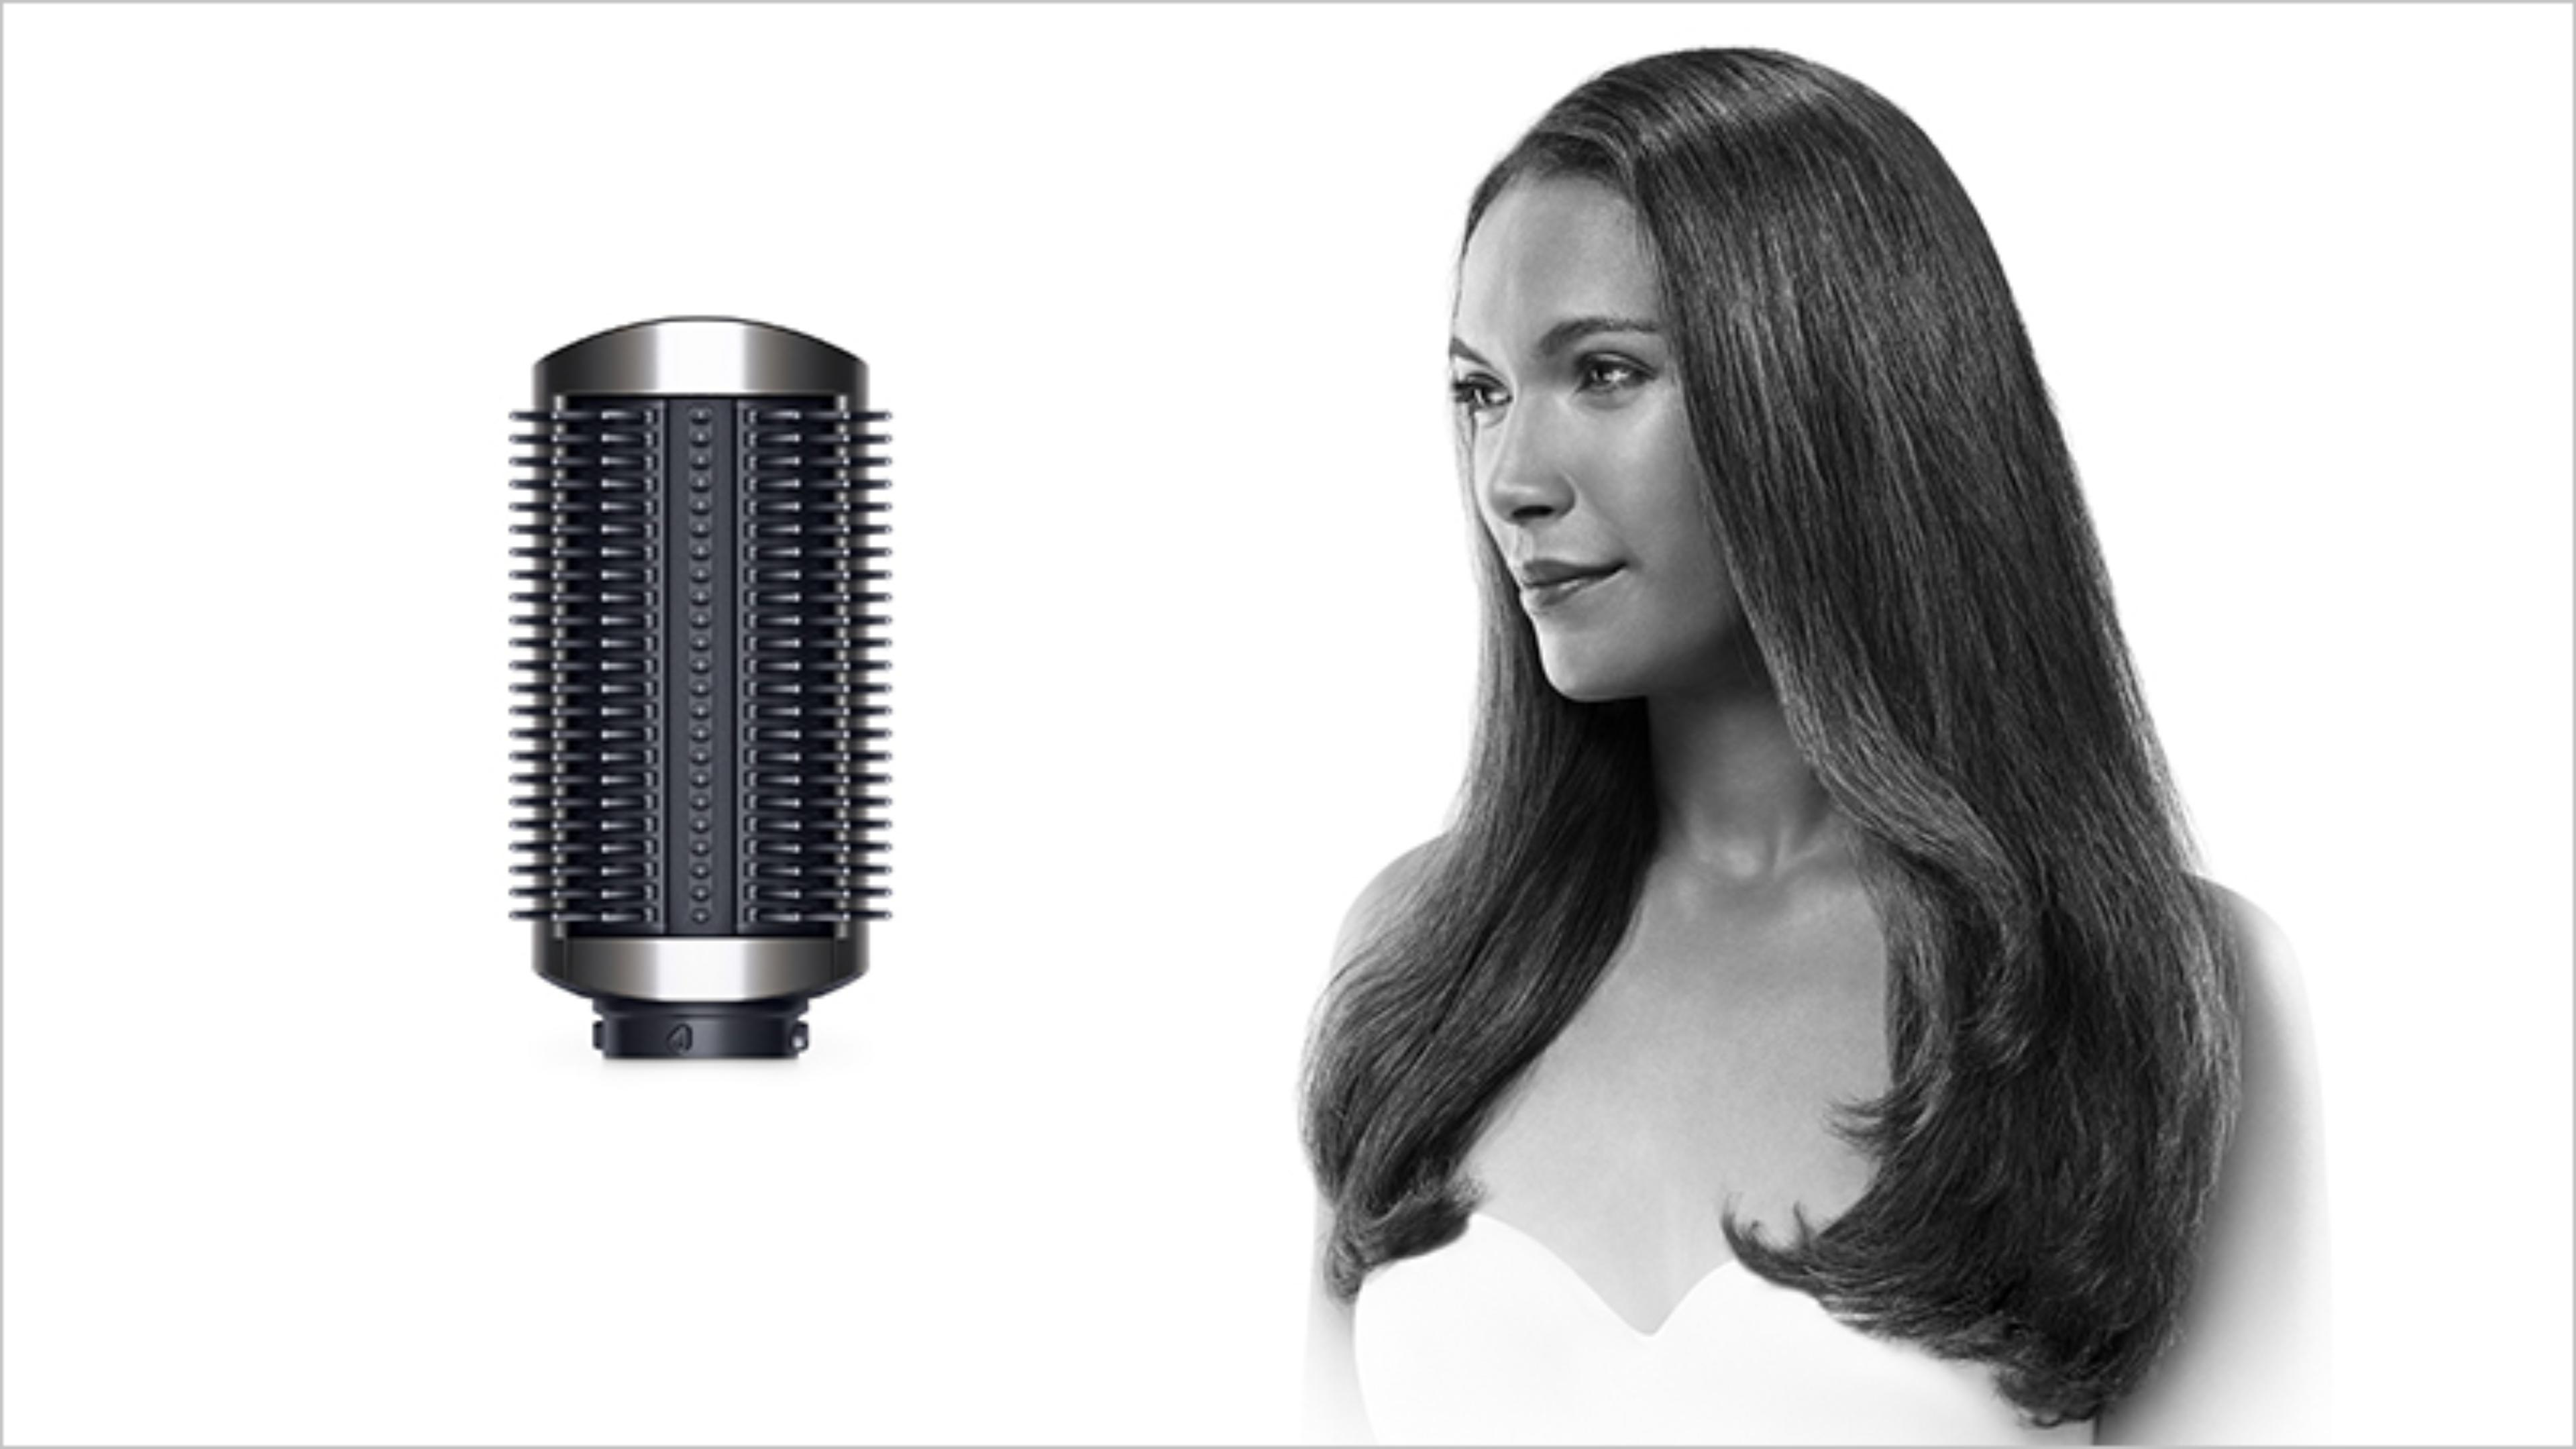 Firm smoothing brush with straight-haired model